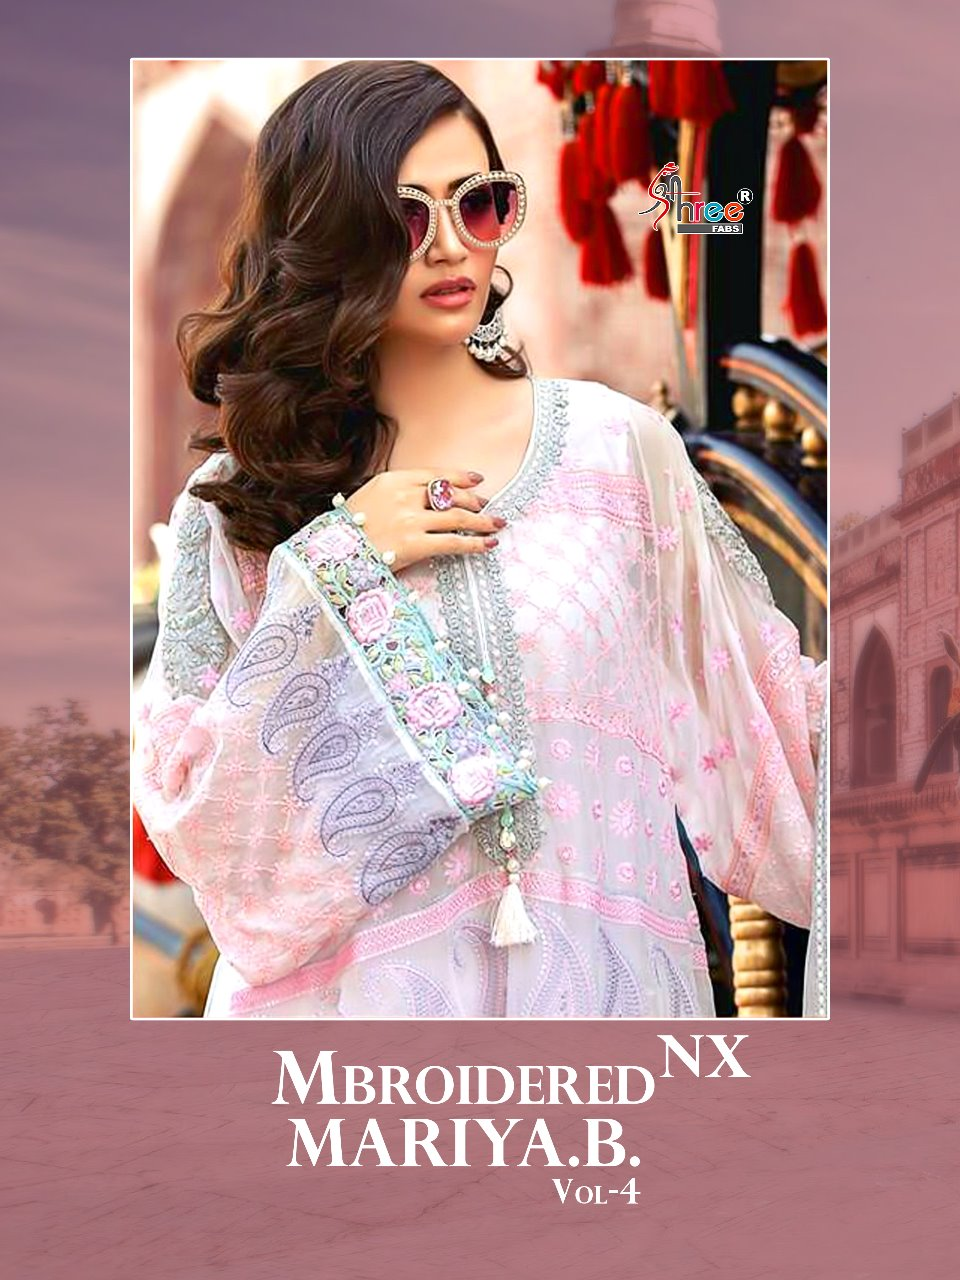 a2e1ac19ce IMG 20180529 WA0263 1 768x1024 - Shree fabs mbroidered Maria b vol 4 Pakistani  Salwar